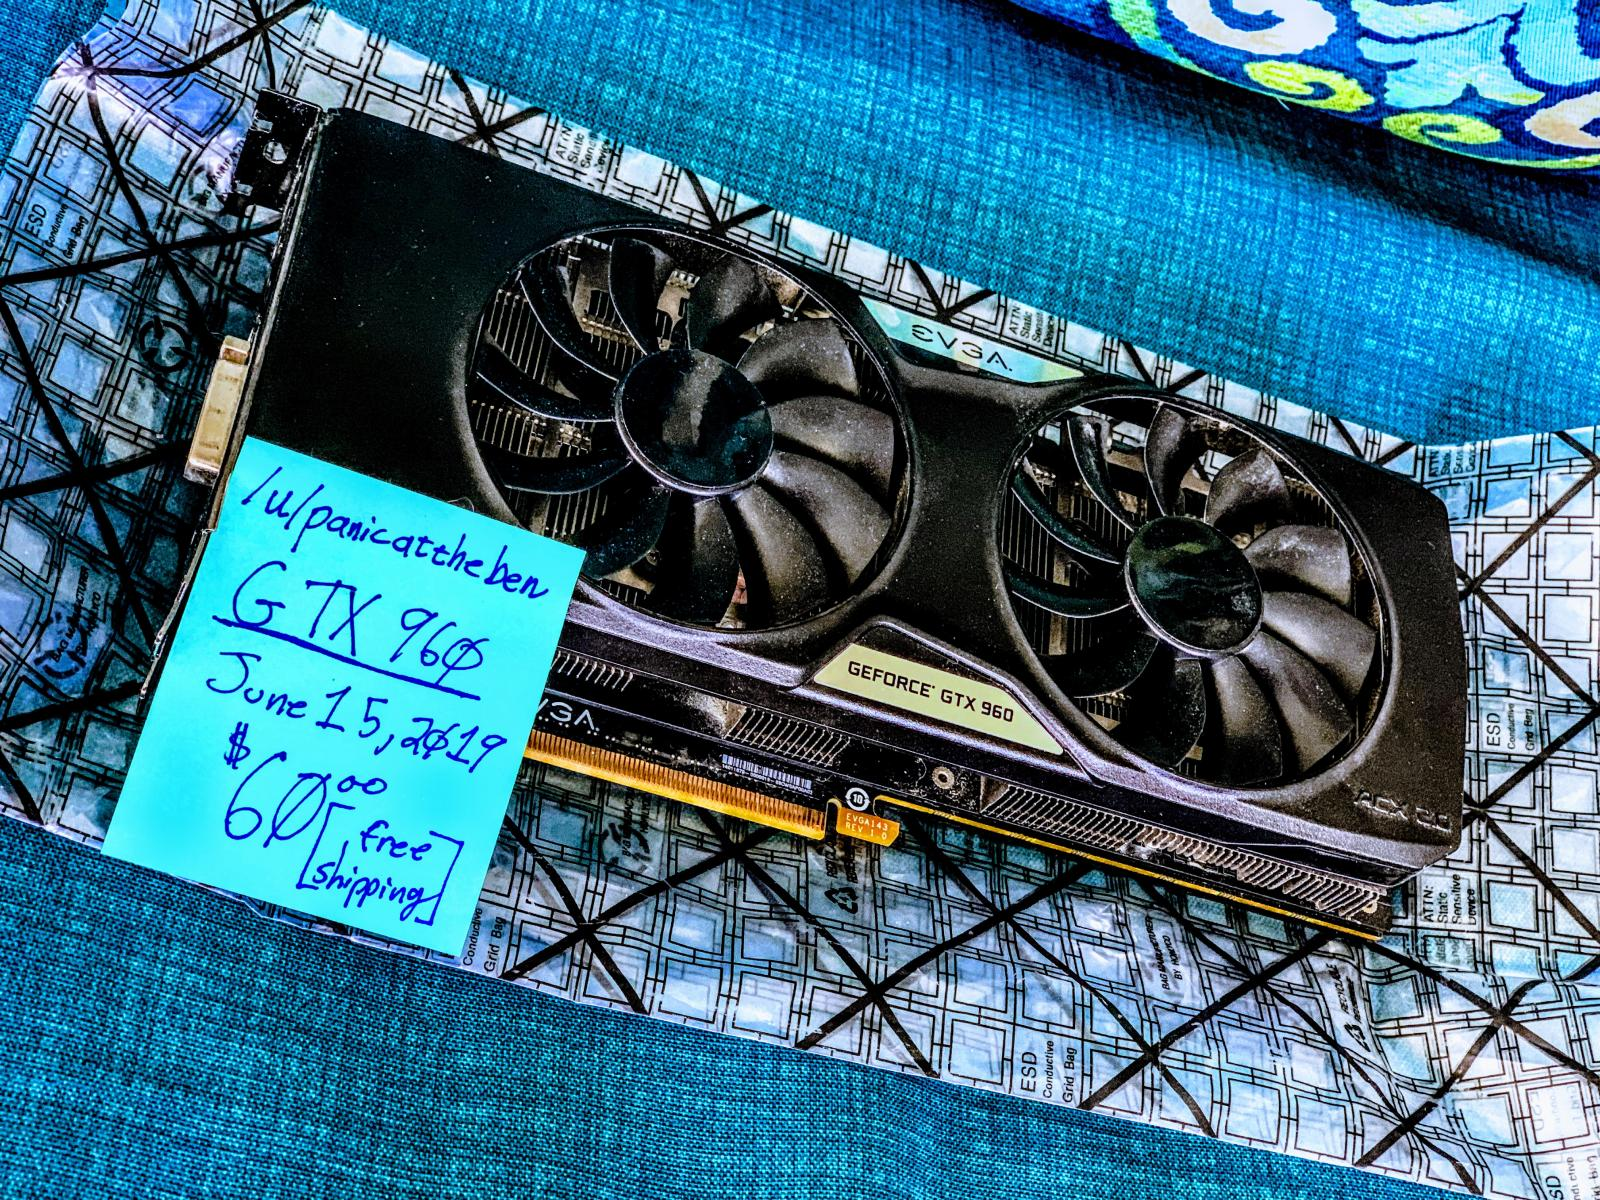 Photo of EVGA GTX 960 2GB [02G-P4-2968-KR]